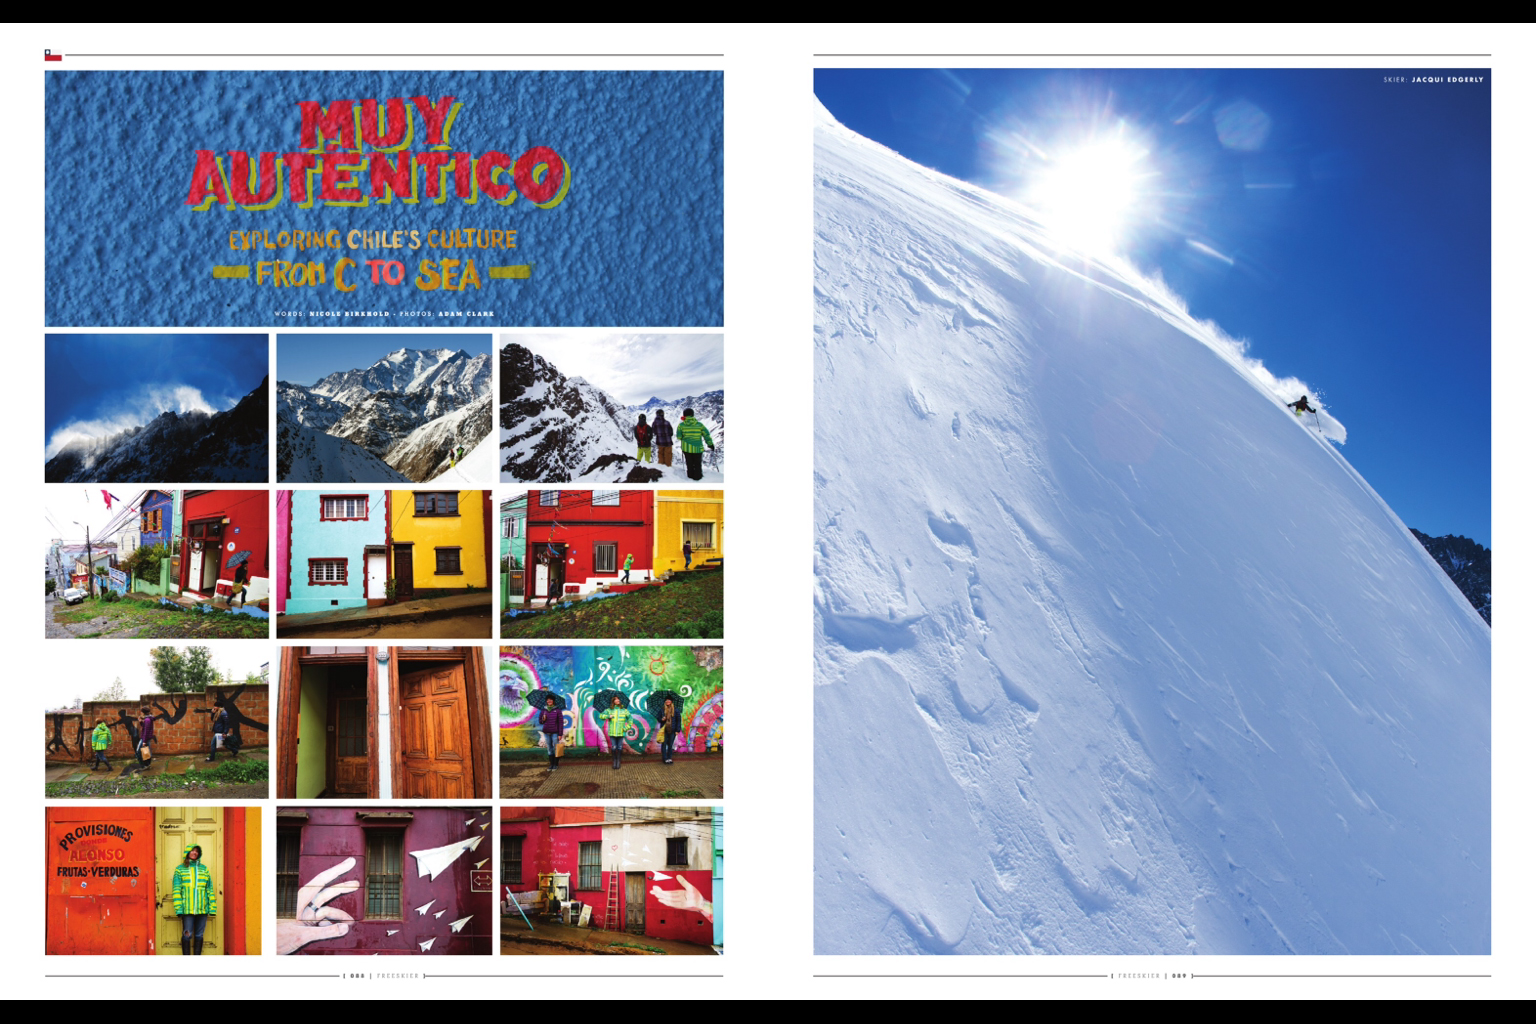 Muy Autentico - featured in Freeskier Magazine December 2011